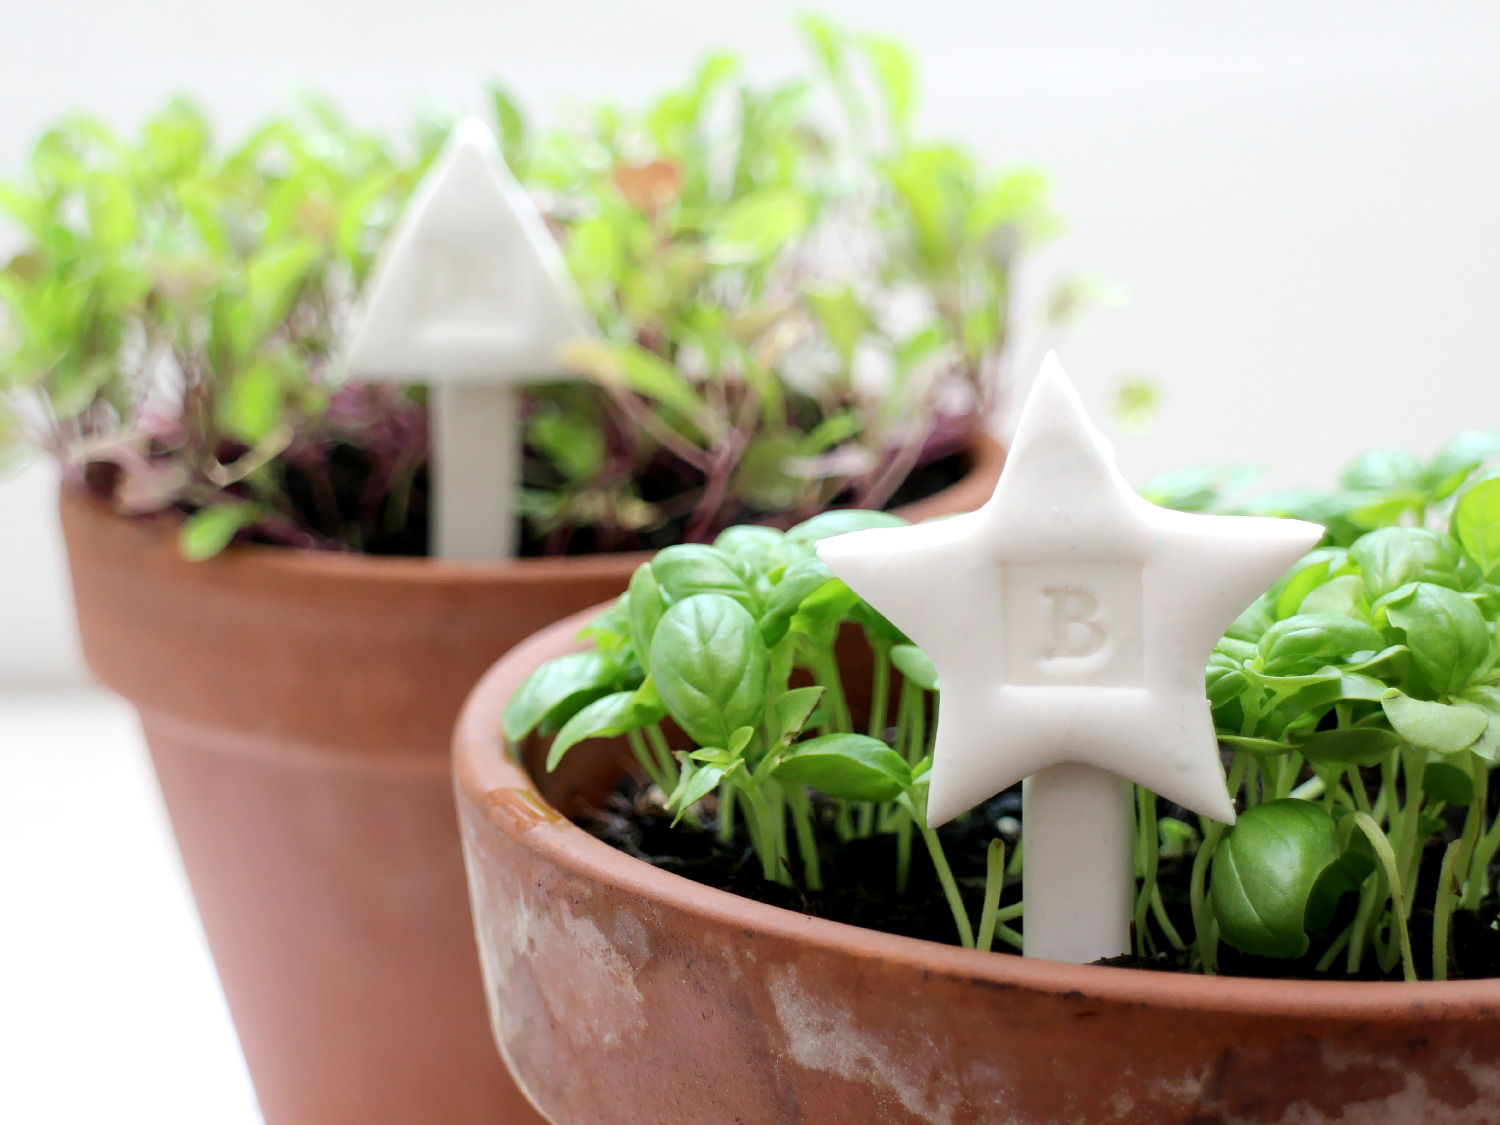 FIMO plant markers for basil